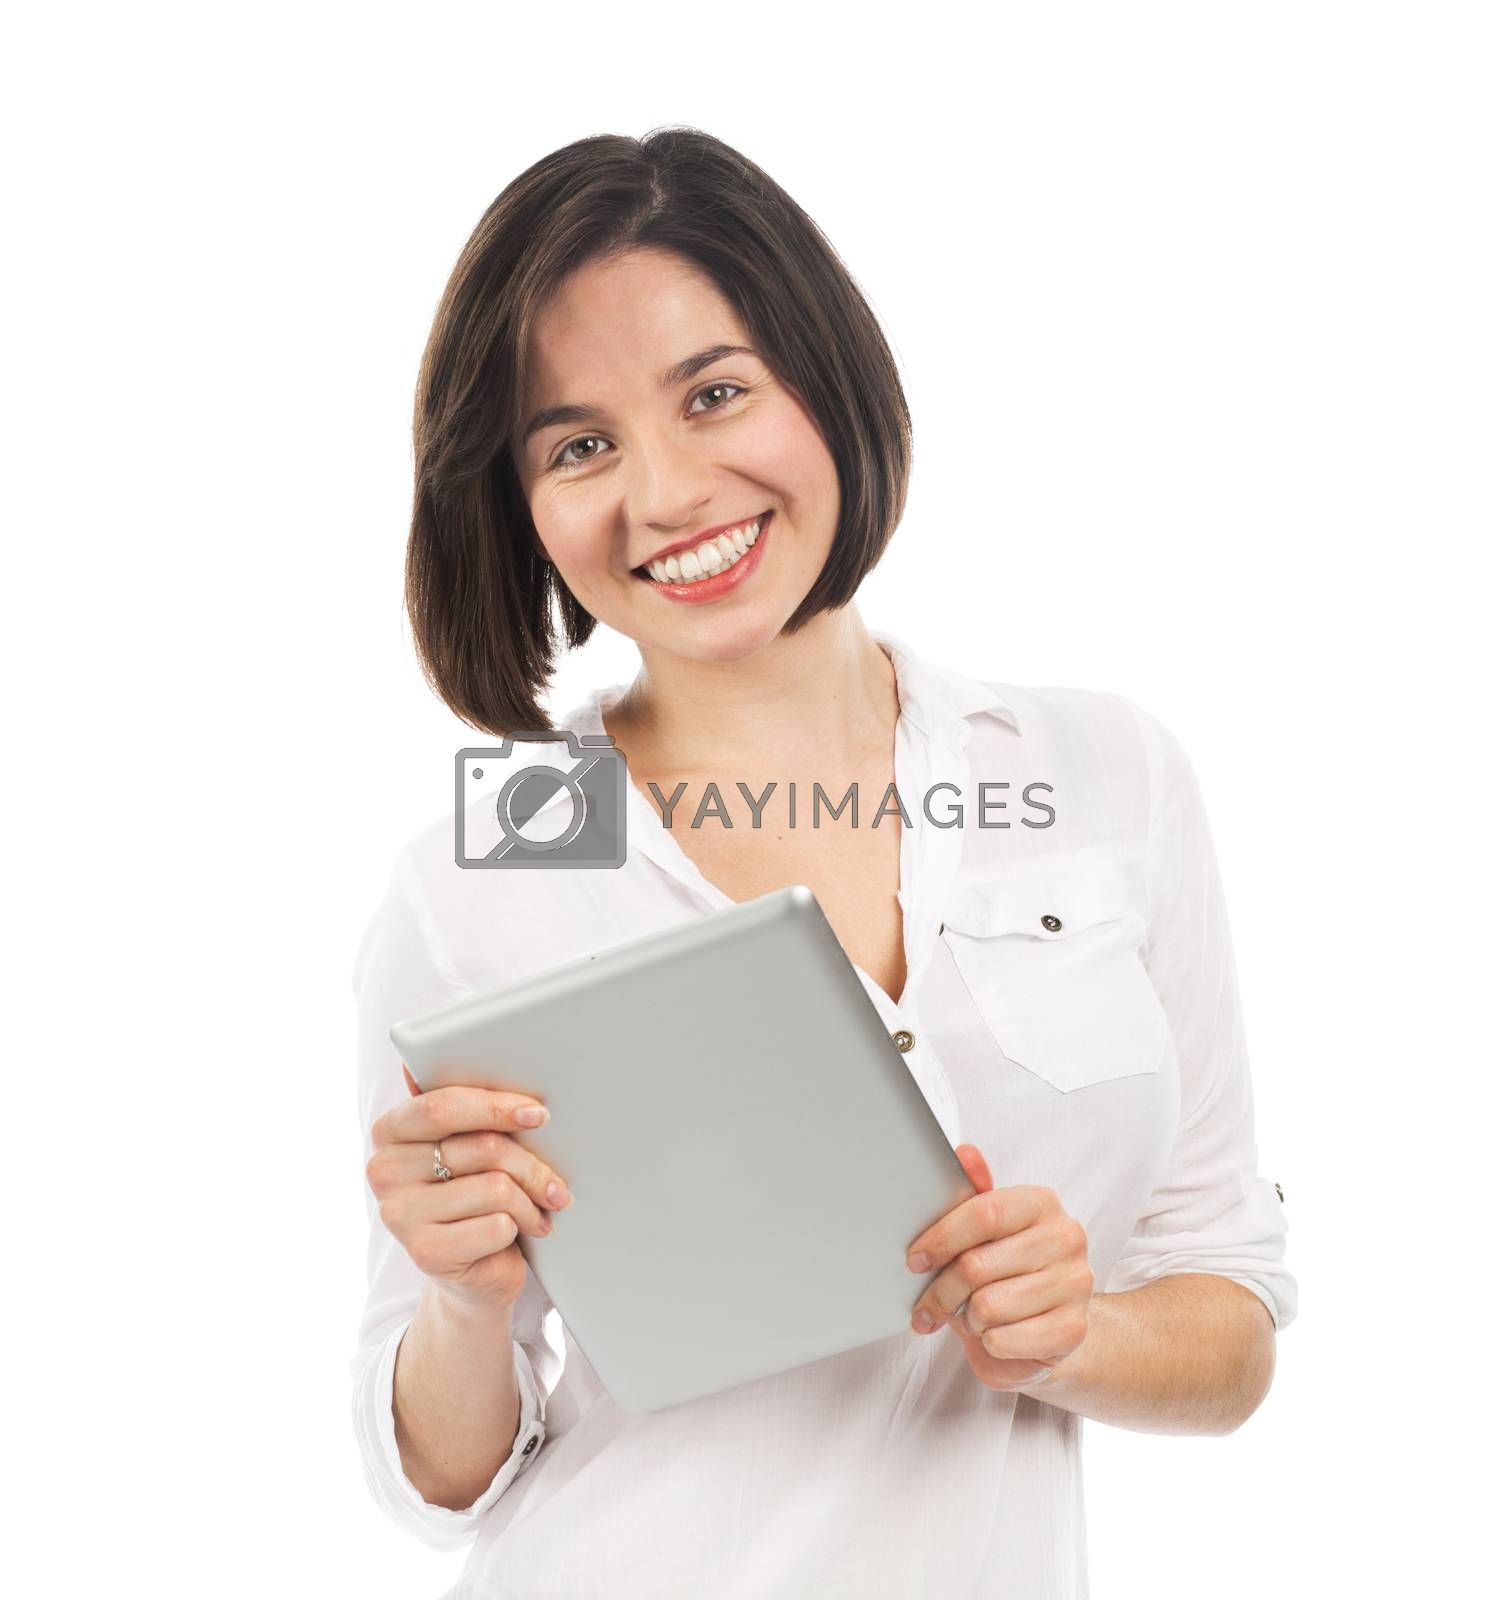 Young smiling woman using an electronic tablet, isolated on white